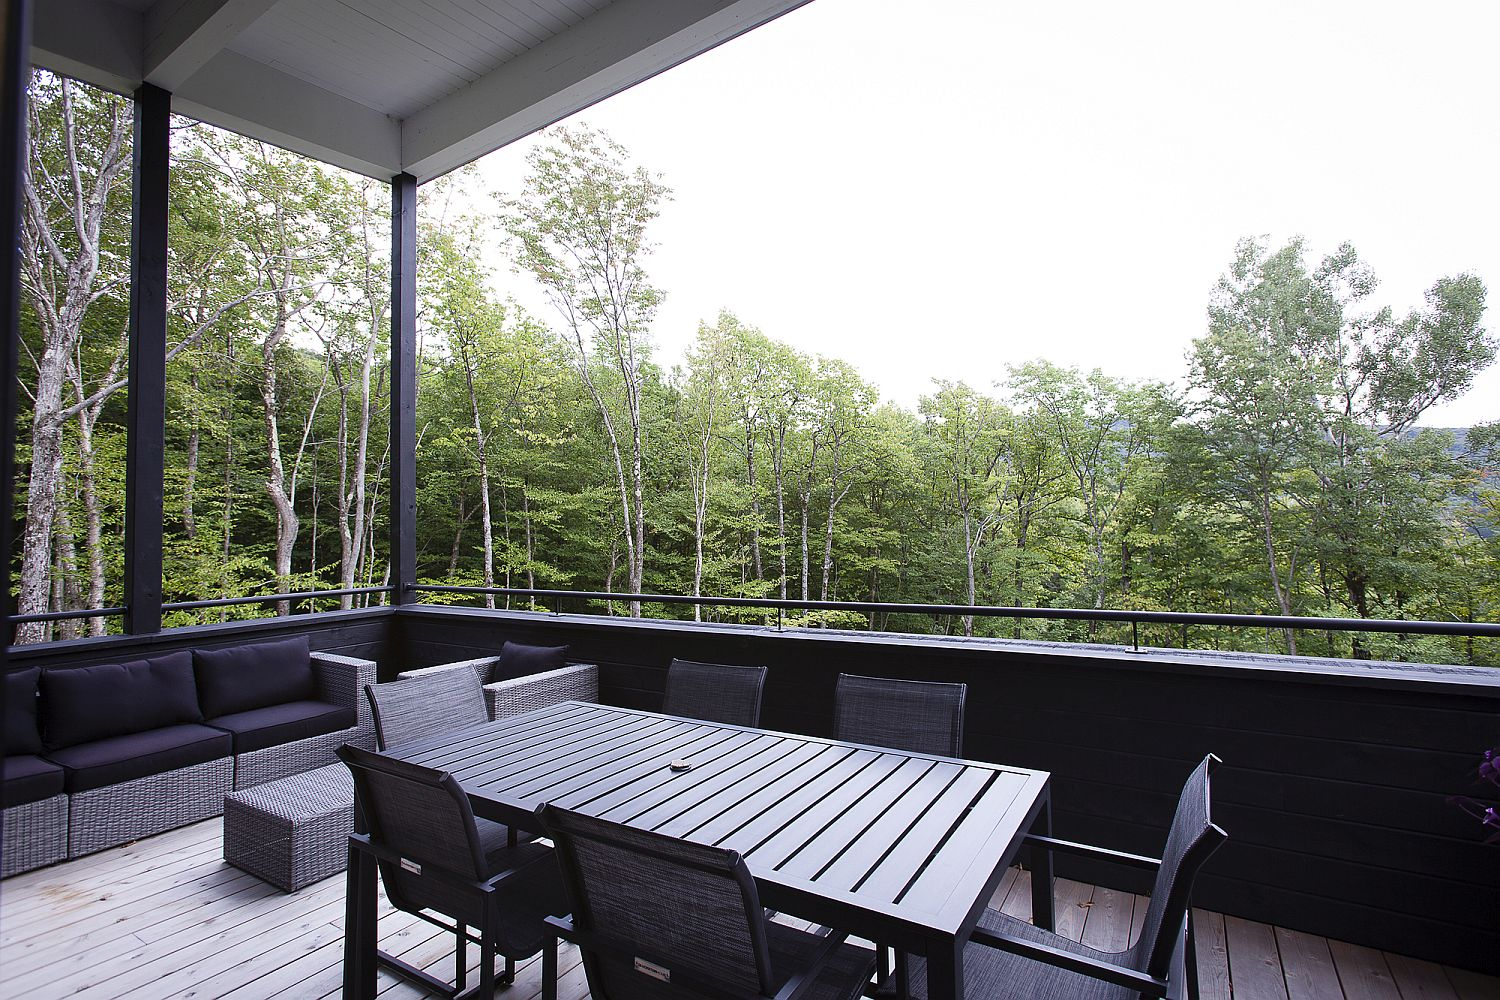 View-of-the-landscape-in-warmer-months-from-the-deck